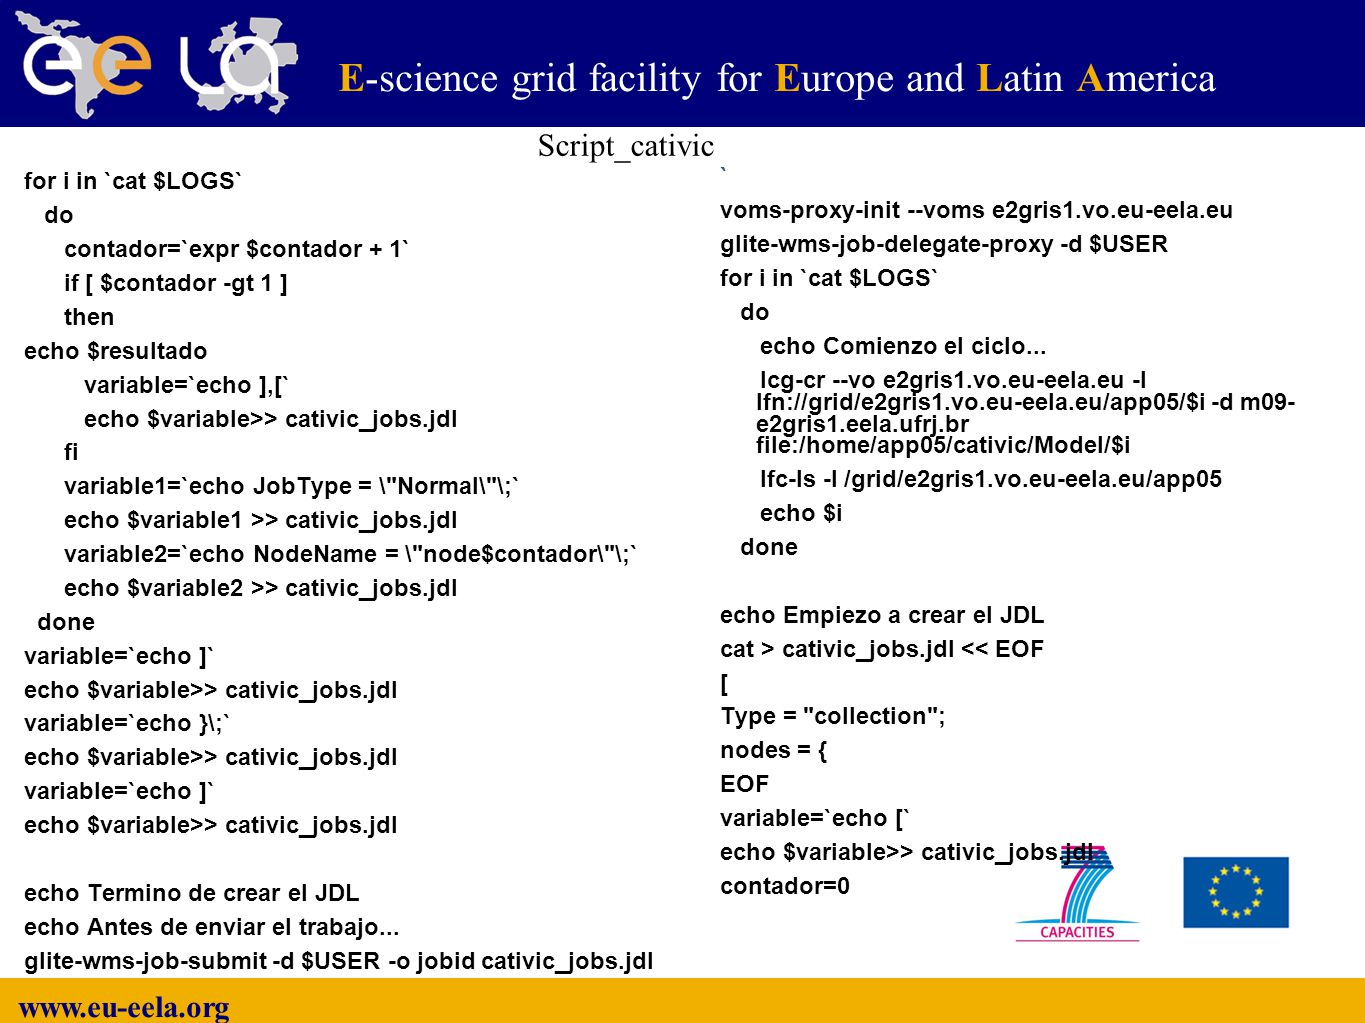 www.eu-eela.org E-science grid facility for Europe and Latin America ` voms-proxy-init --voms e2gris1.vo.eu-eela.eu glite-wms-job-delegate-proxy -d $USER for i in `cat $LOGS` do echo Comienzo el ciclo...